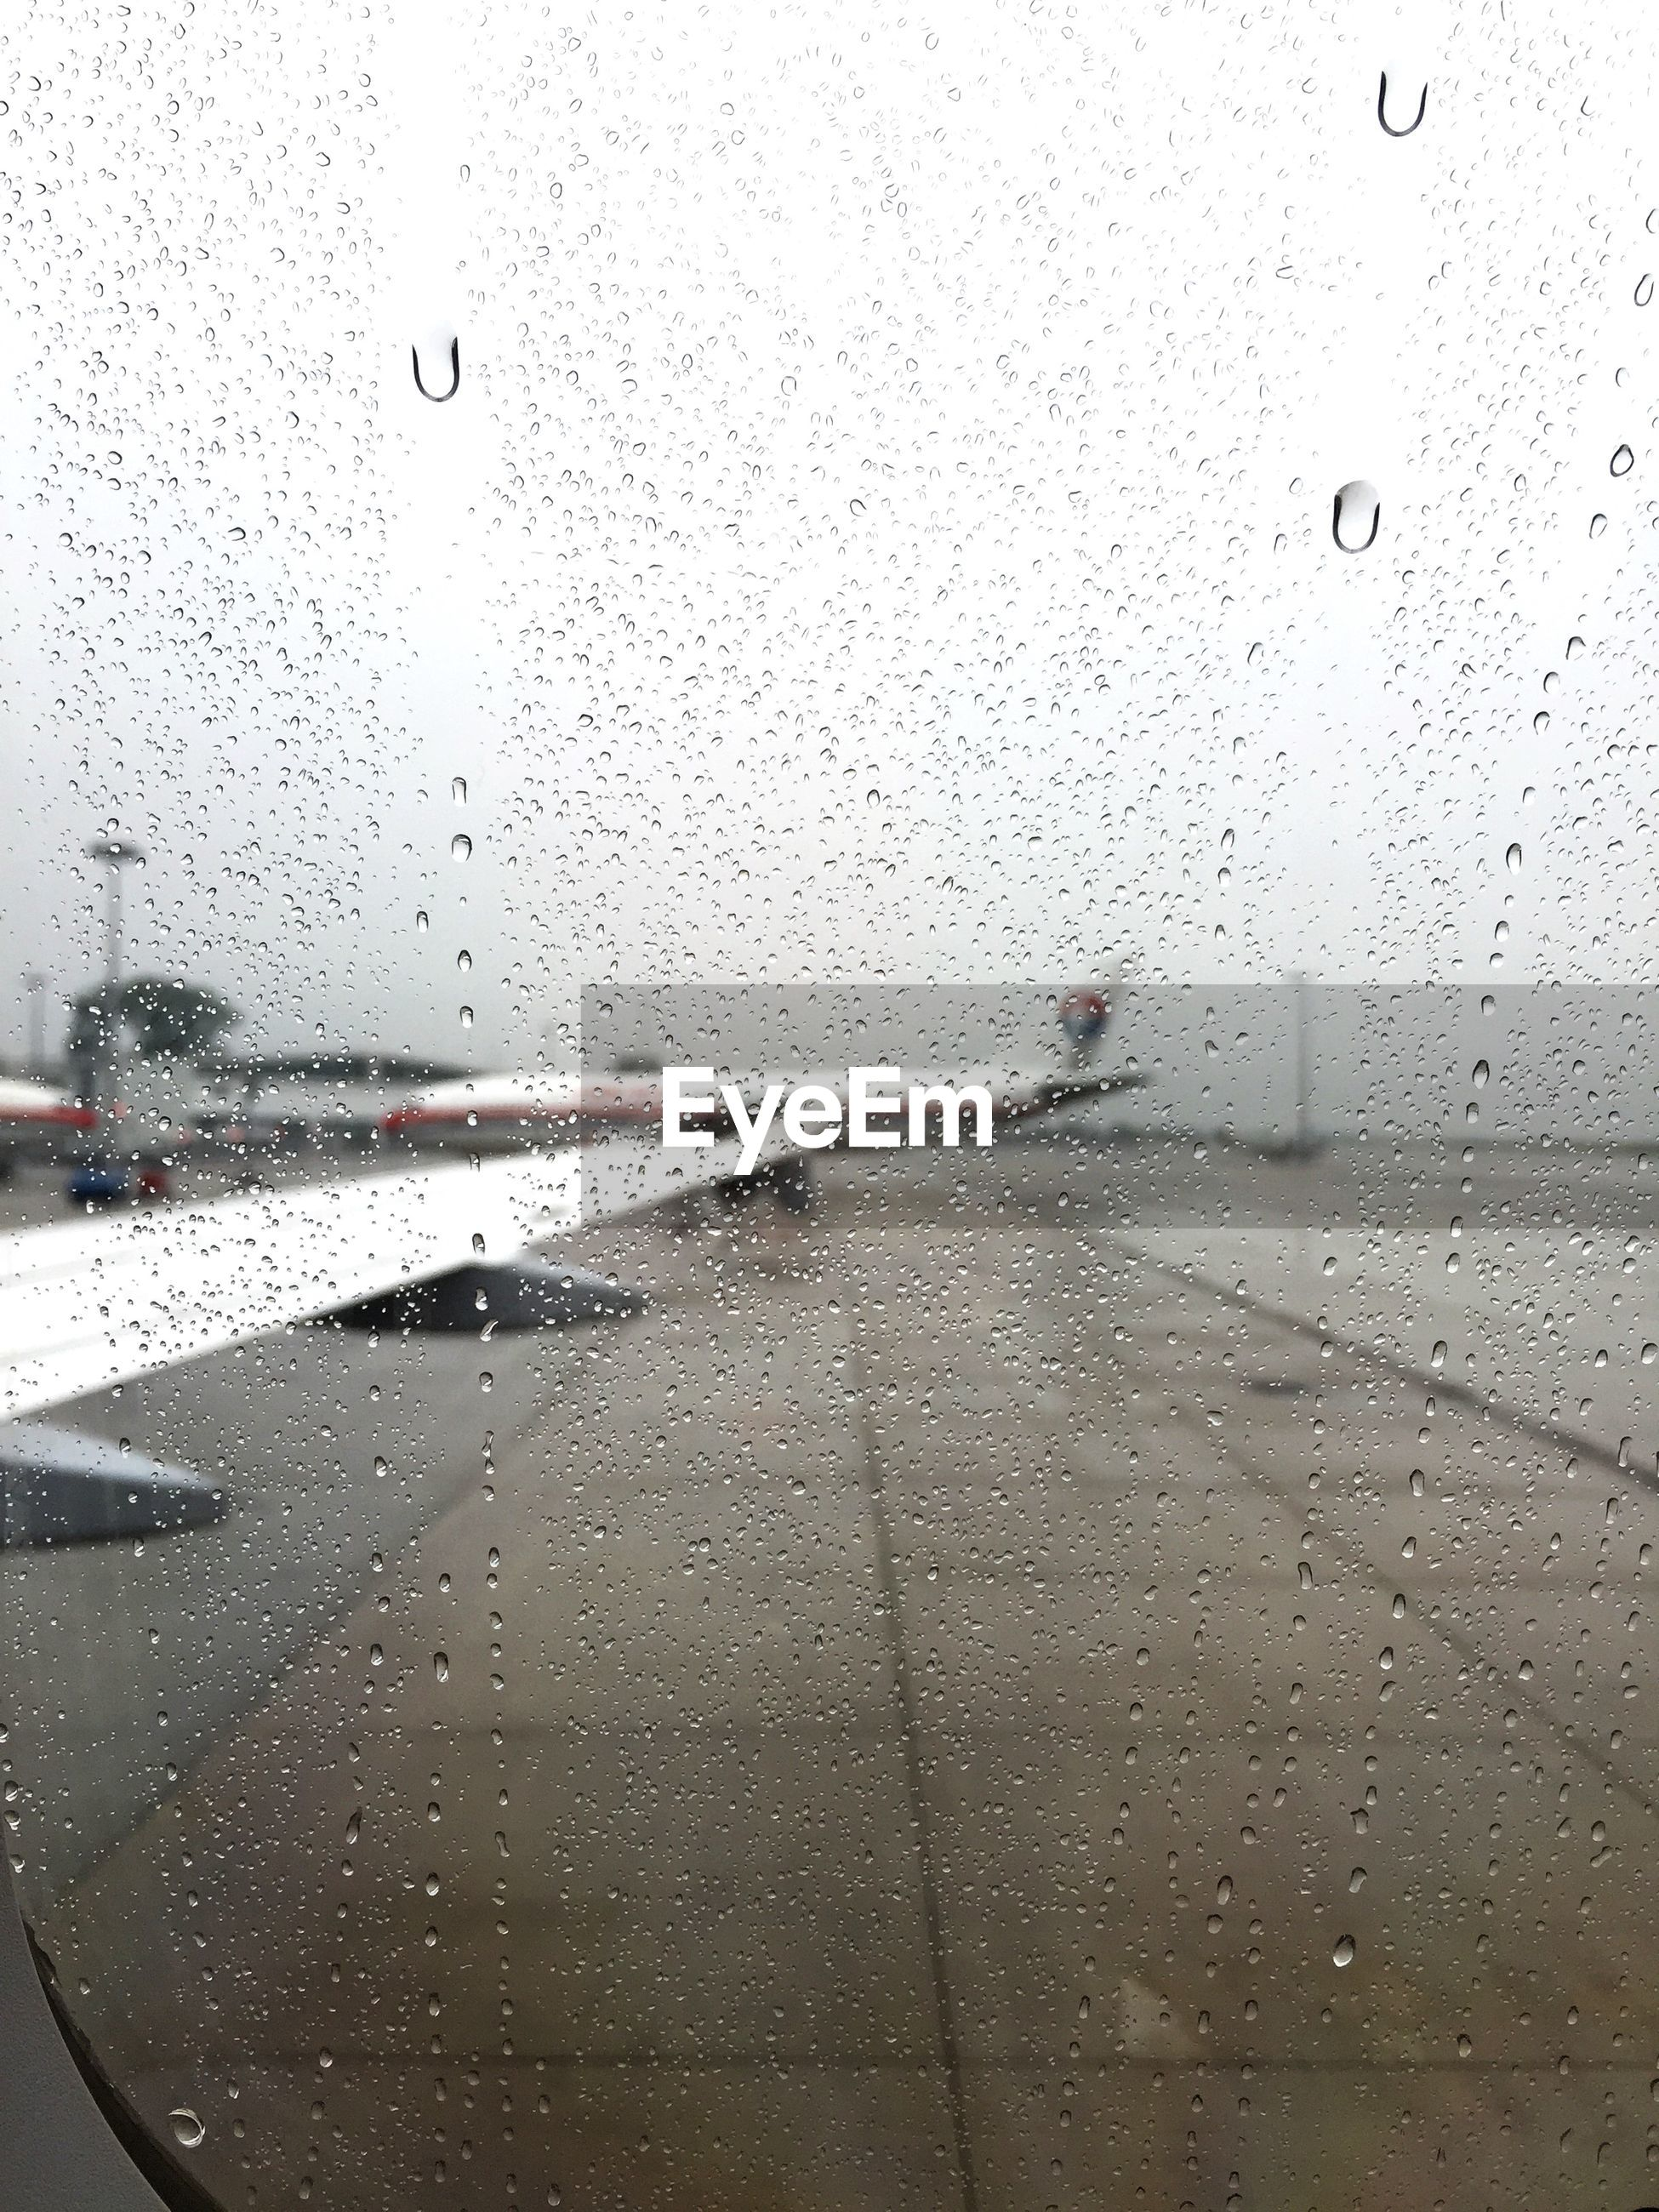 Cropped image of airplane against sky seen through wet window